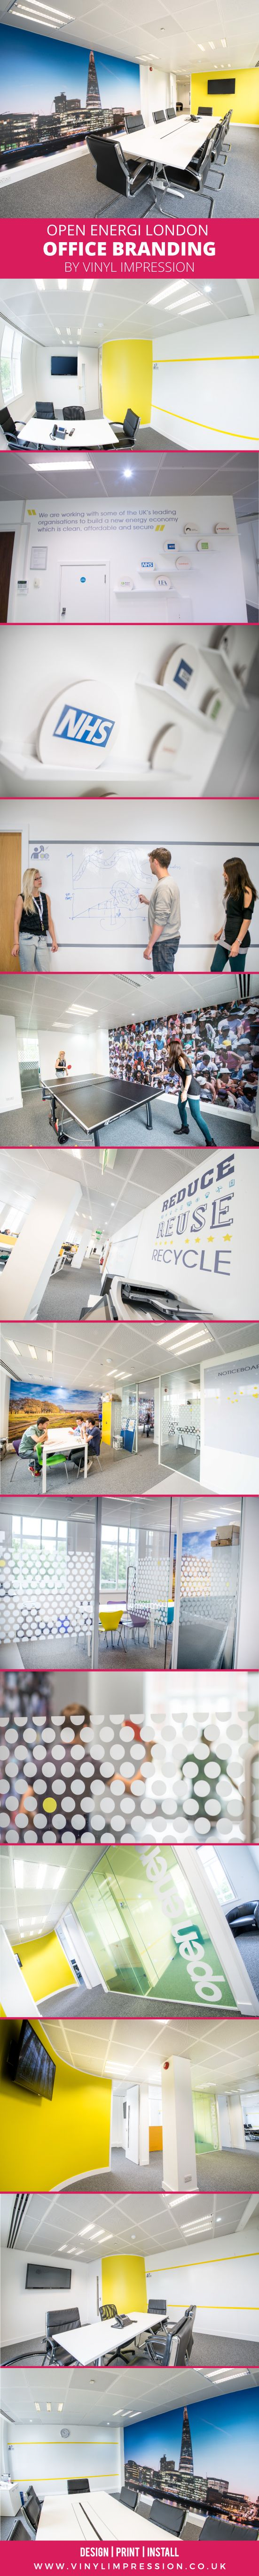 Office Branding Project Designed Printed Installed By Vinyl Impression